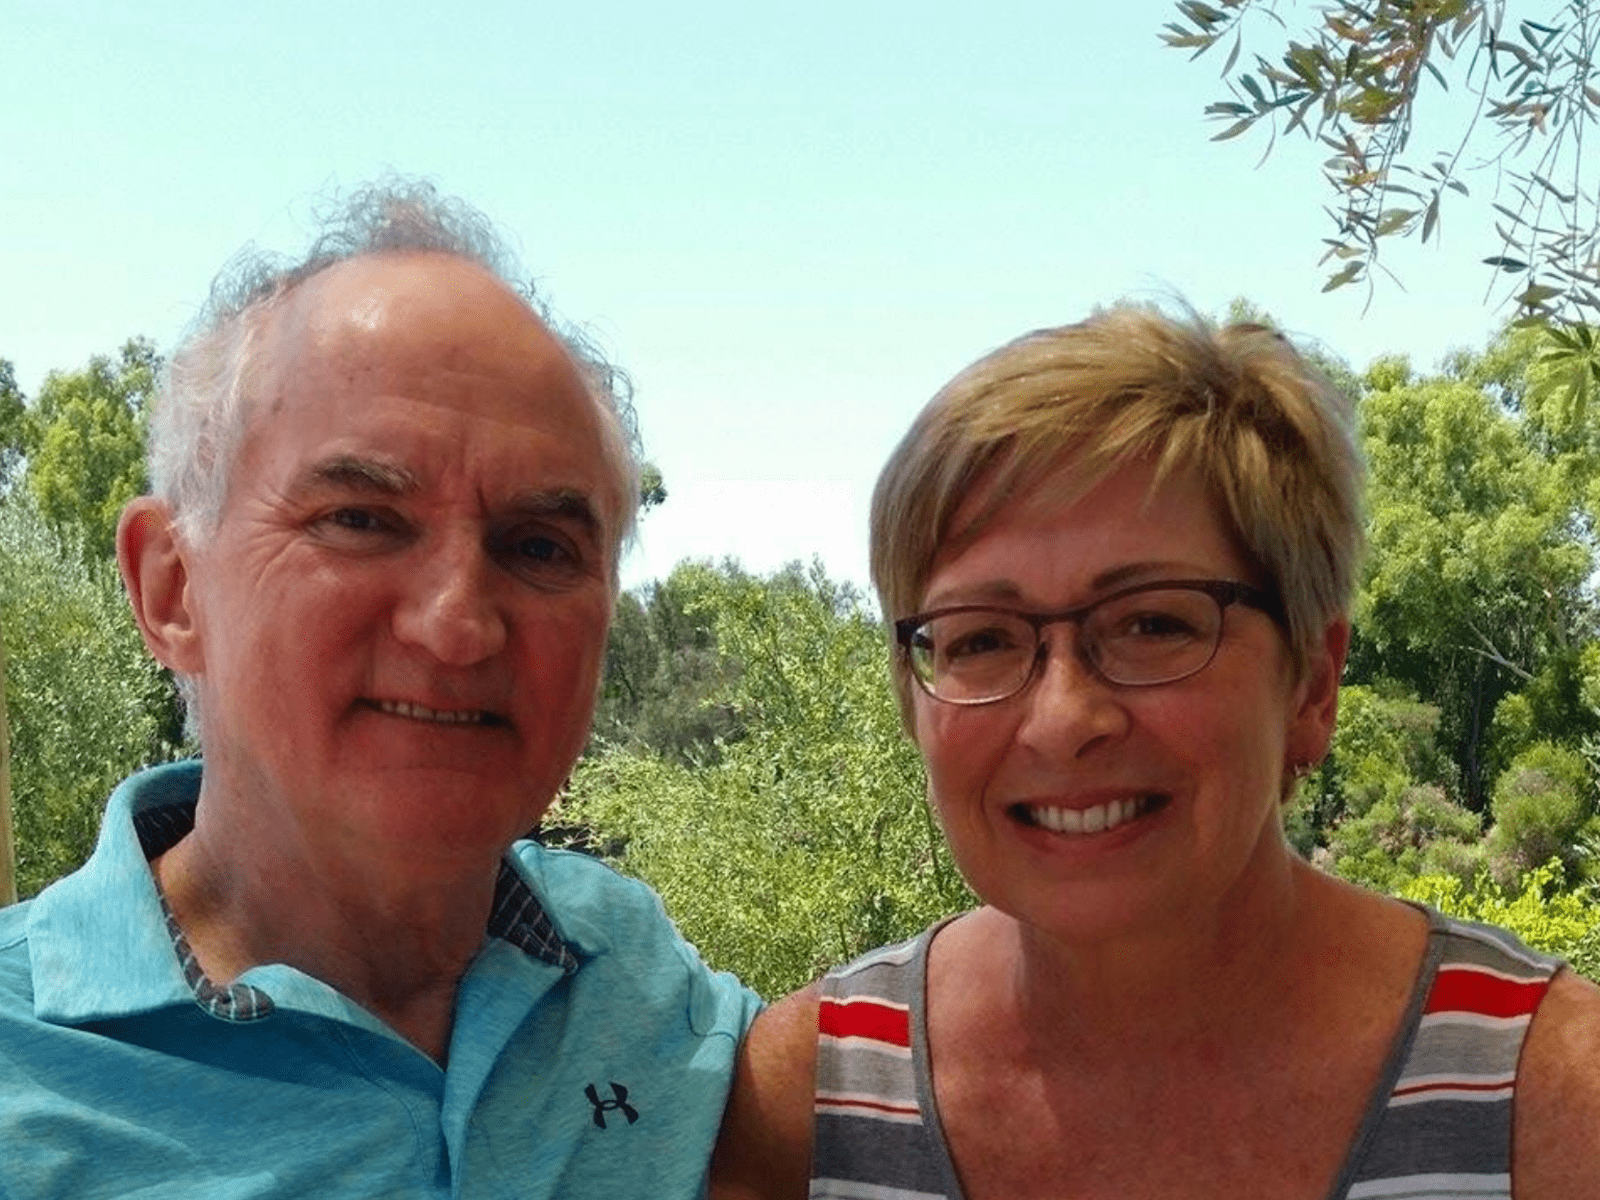 Cathy & Gerald from Halifax, Nova Scotia, Canada